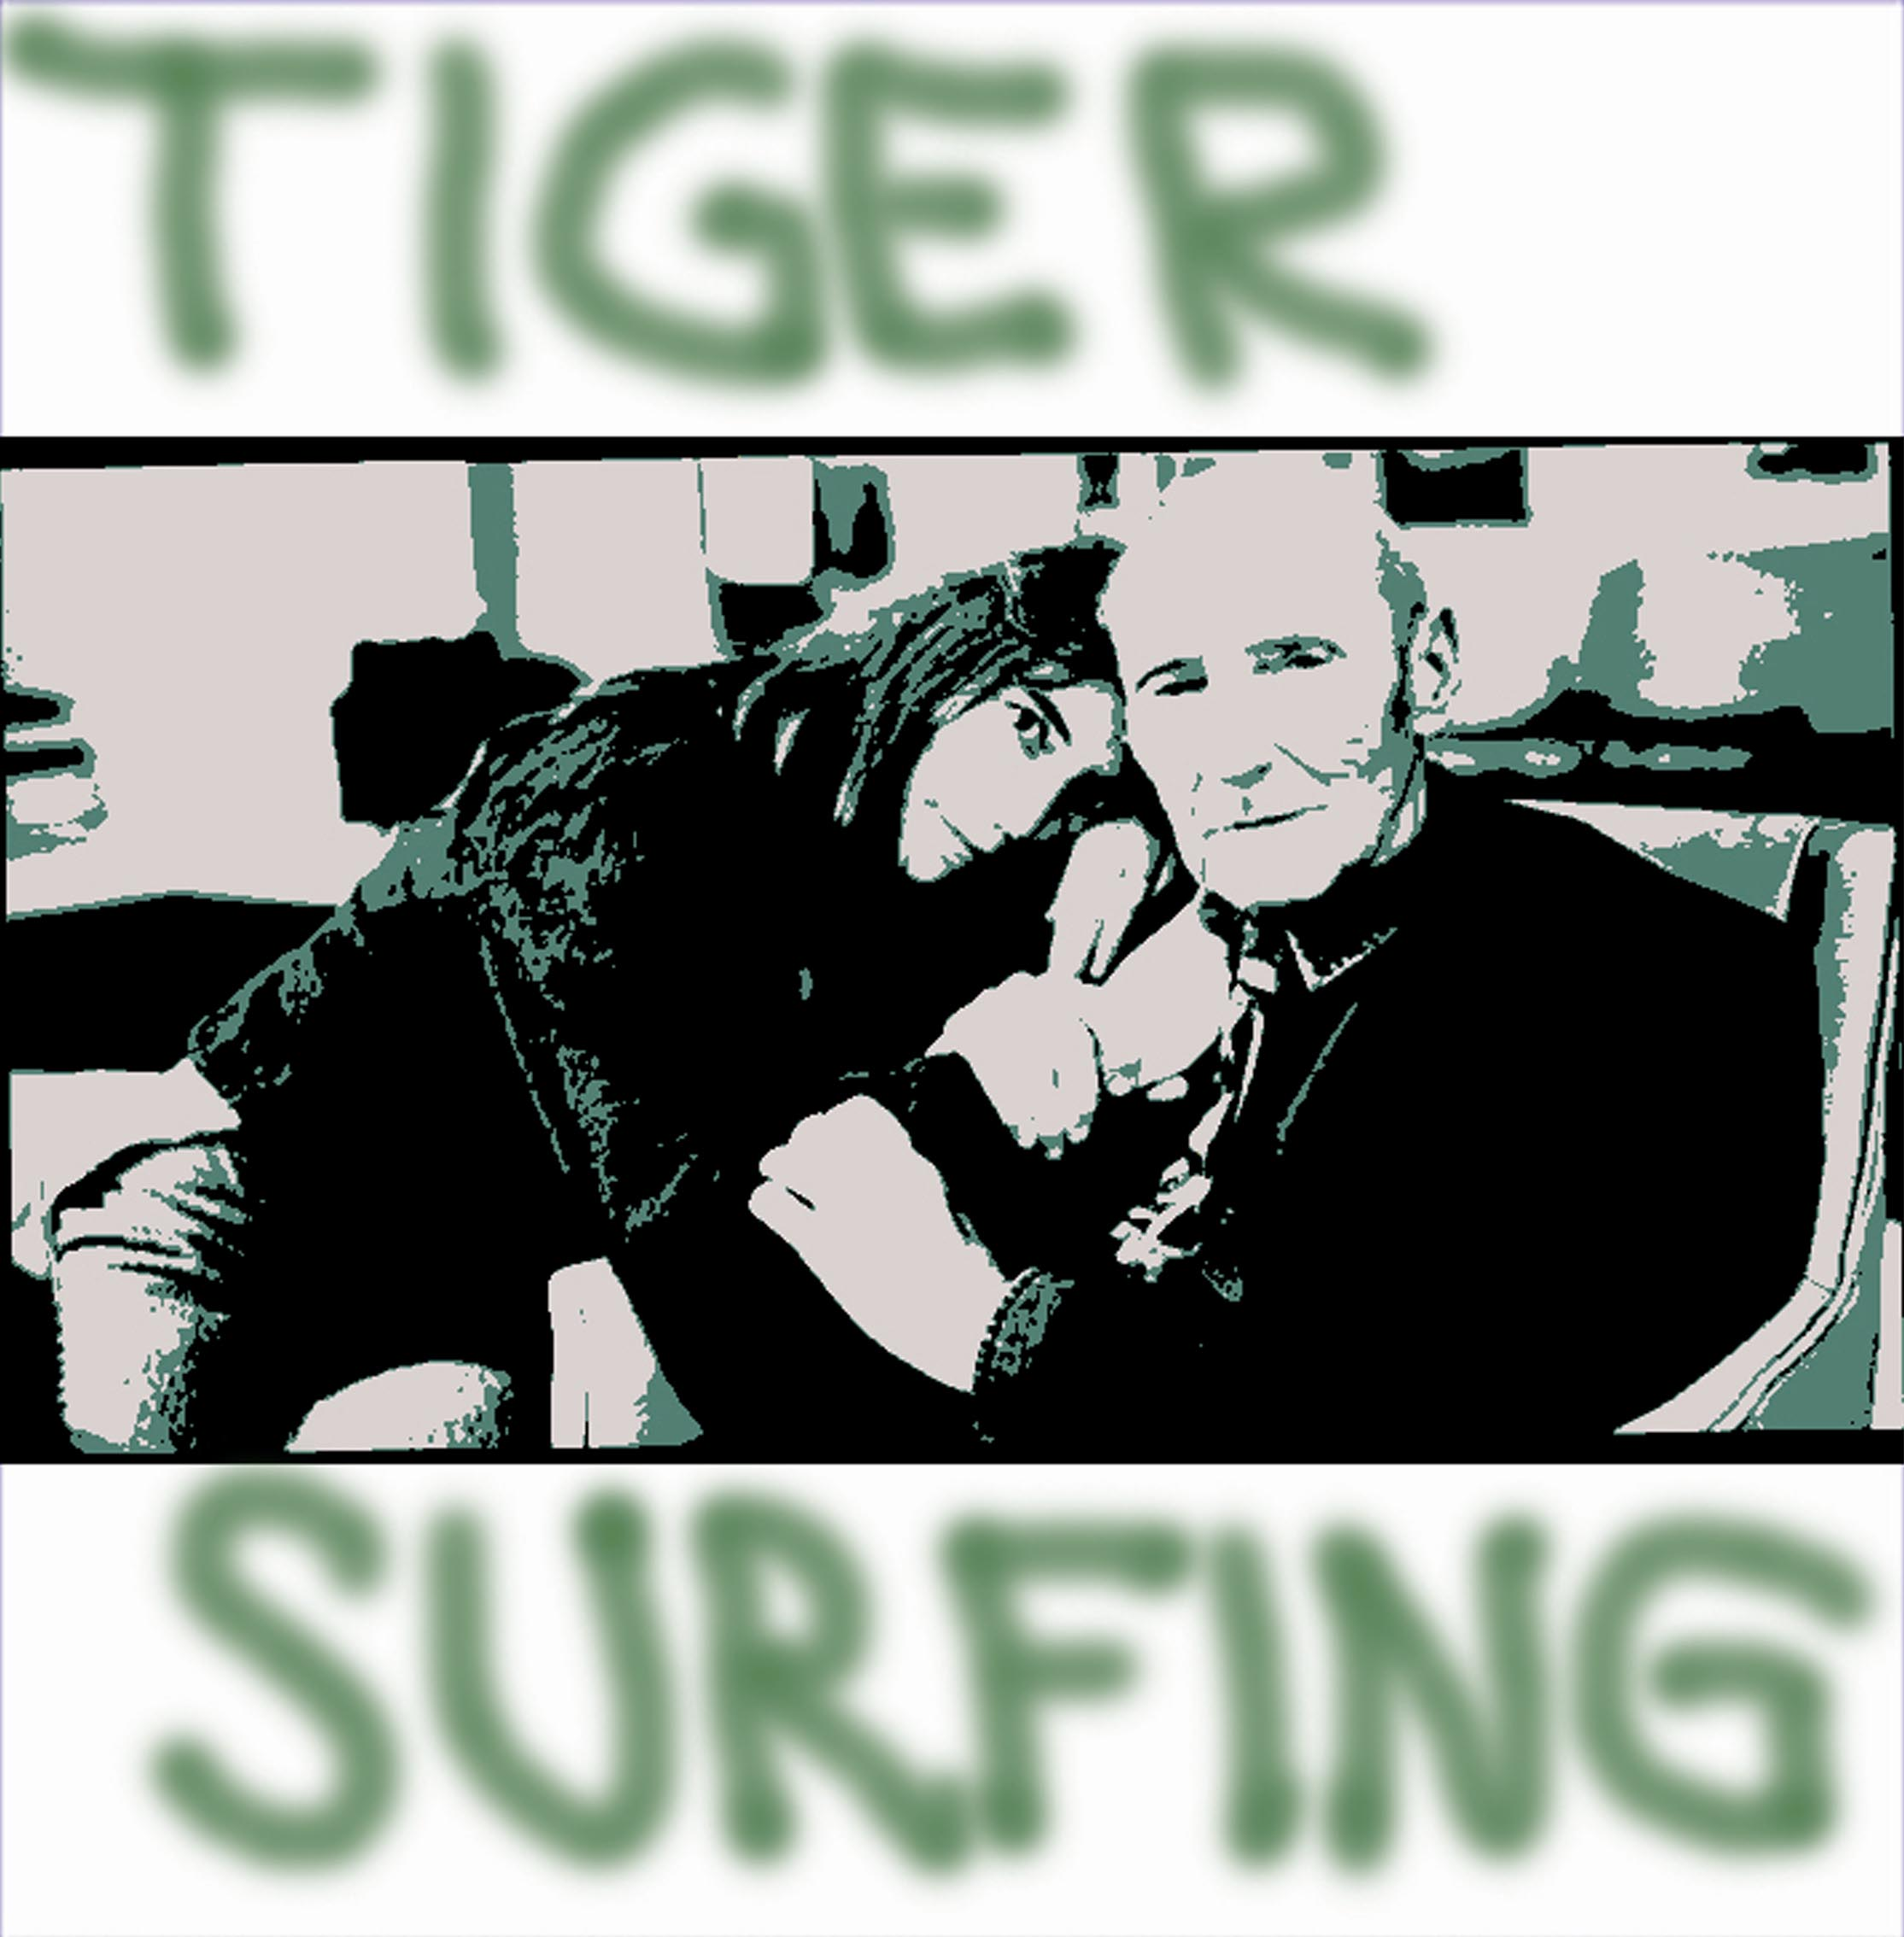 Tiger surfing Tiff.jpg